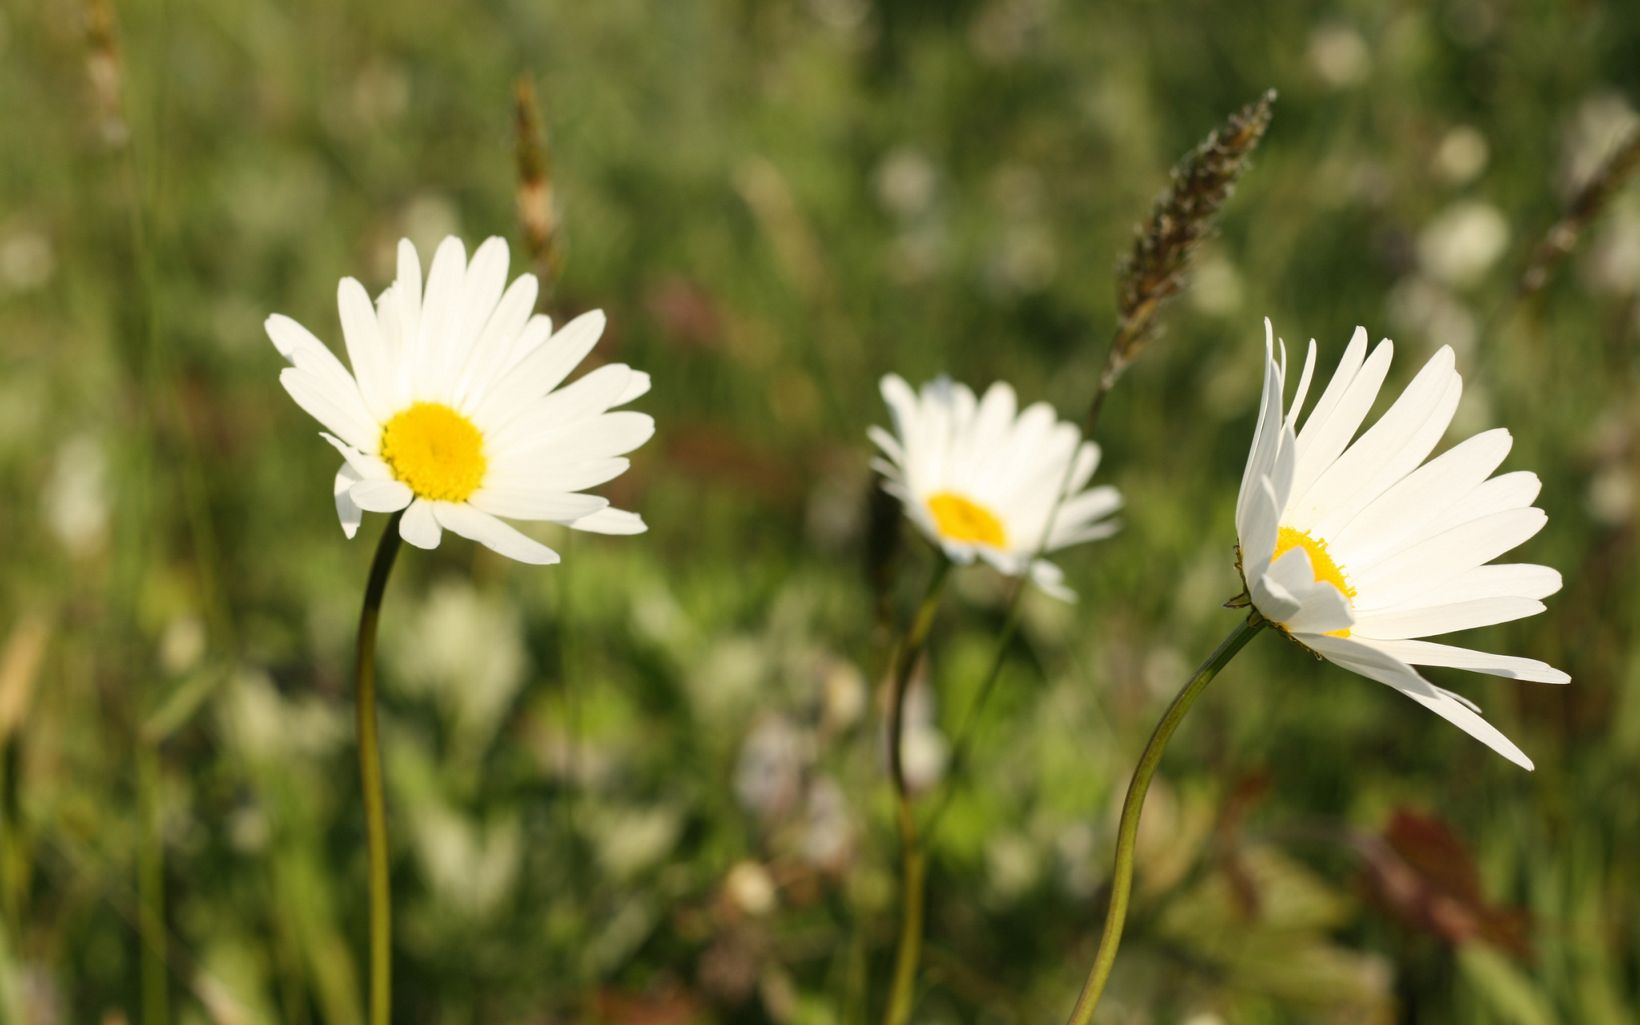 Three small white daisies with yellow centers.